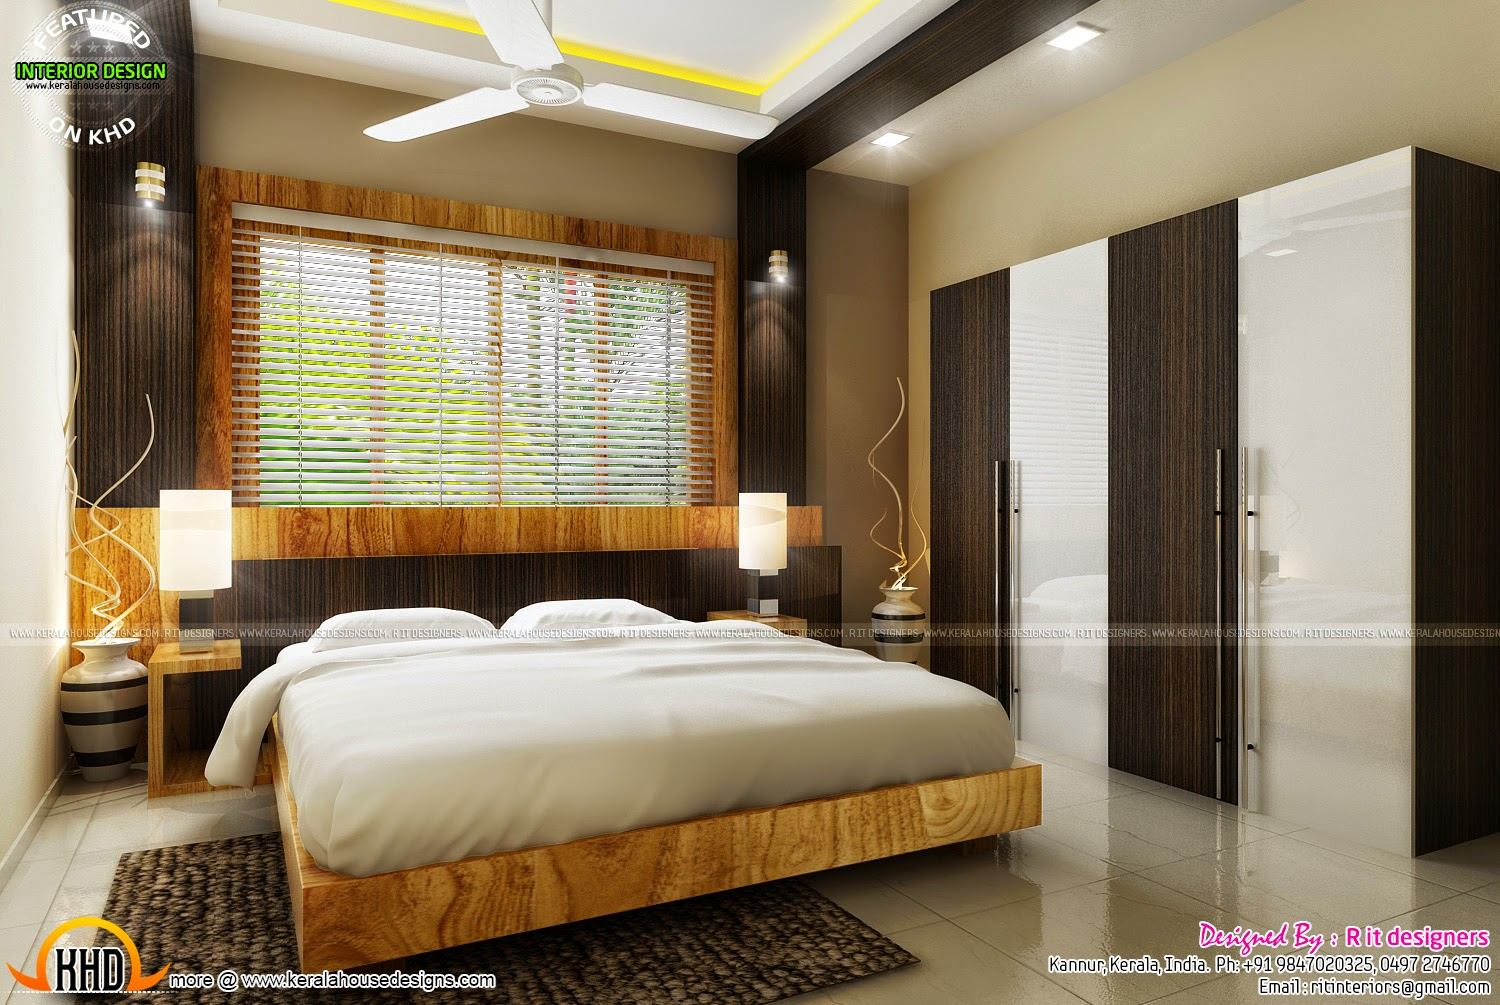 Bedroom interior design with cost kerala home design and floor plans - Bedrooms interior design ...